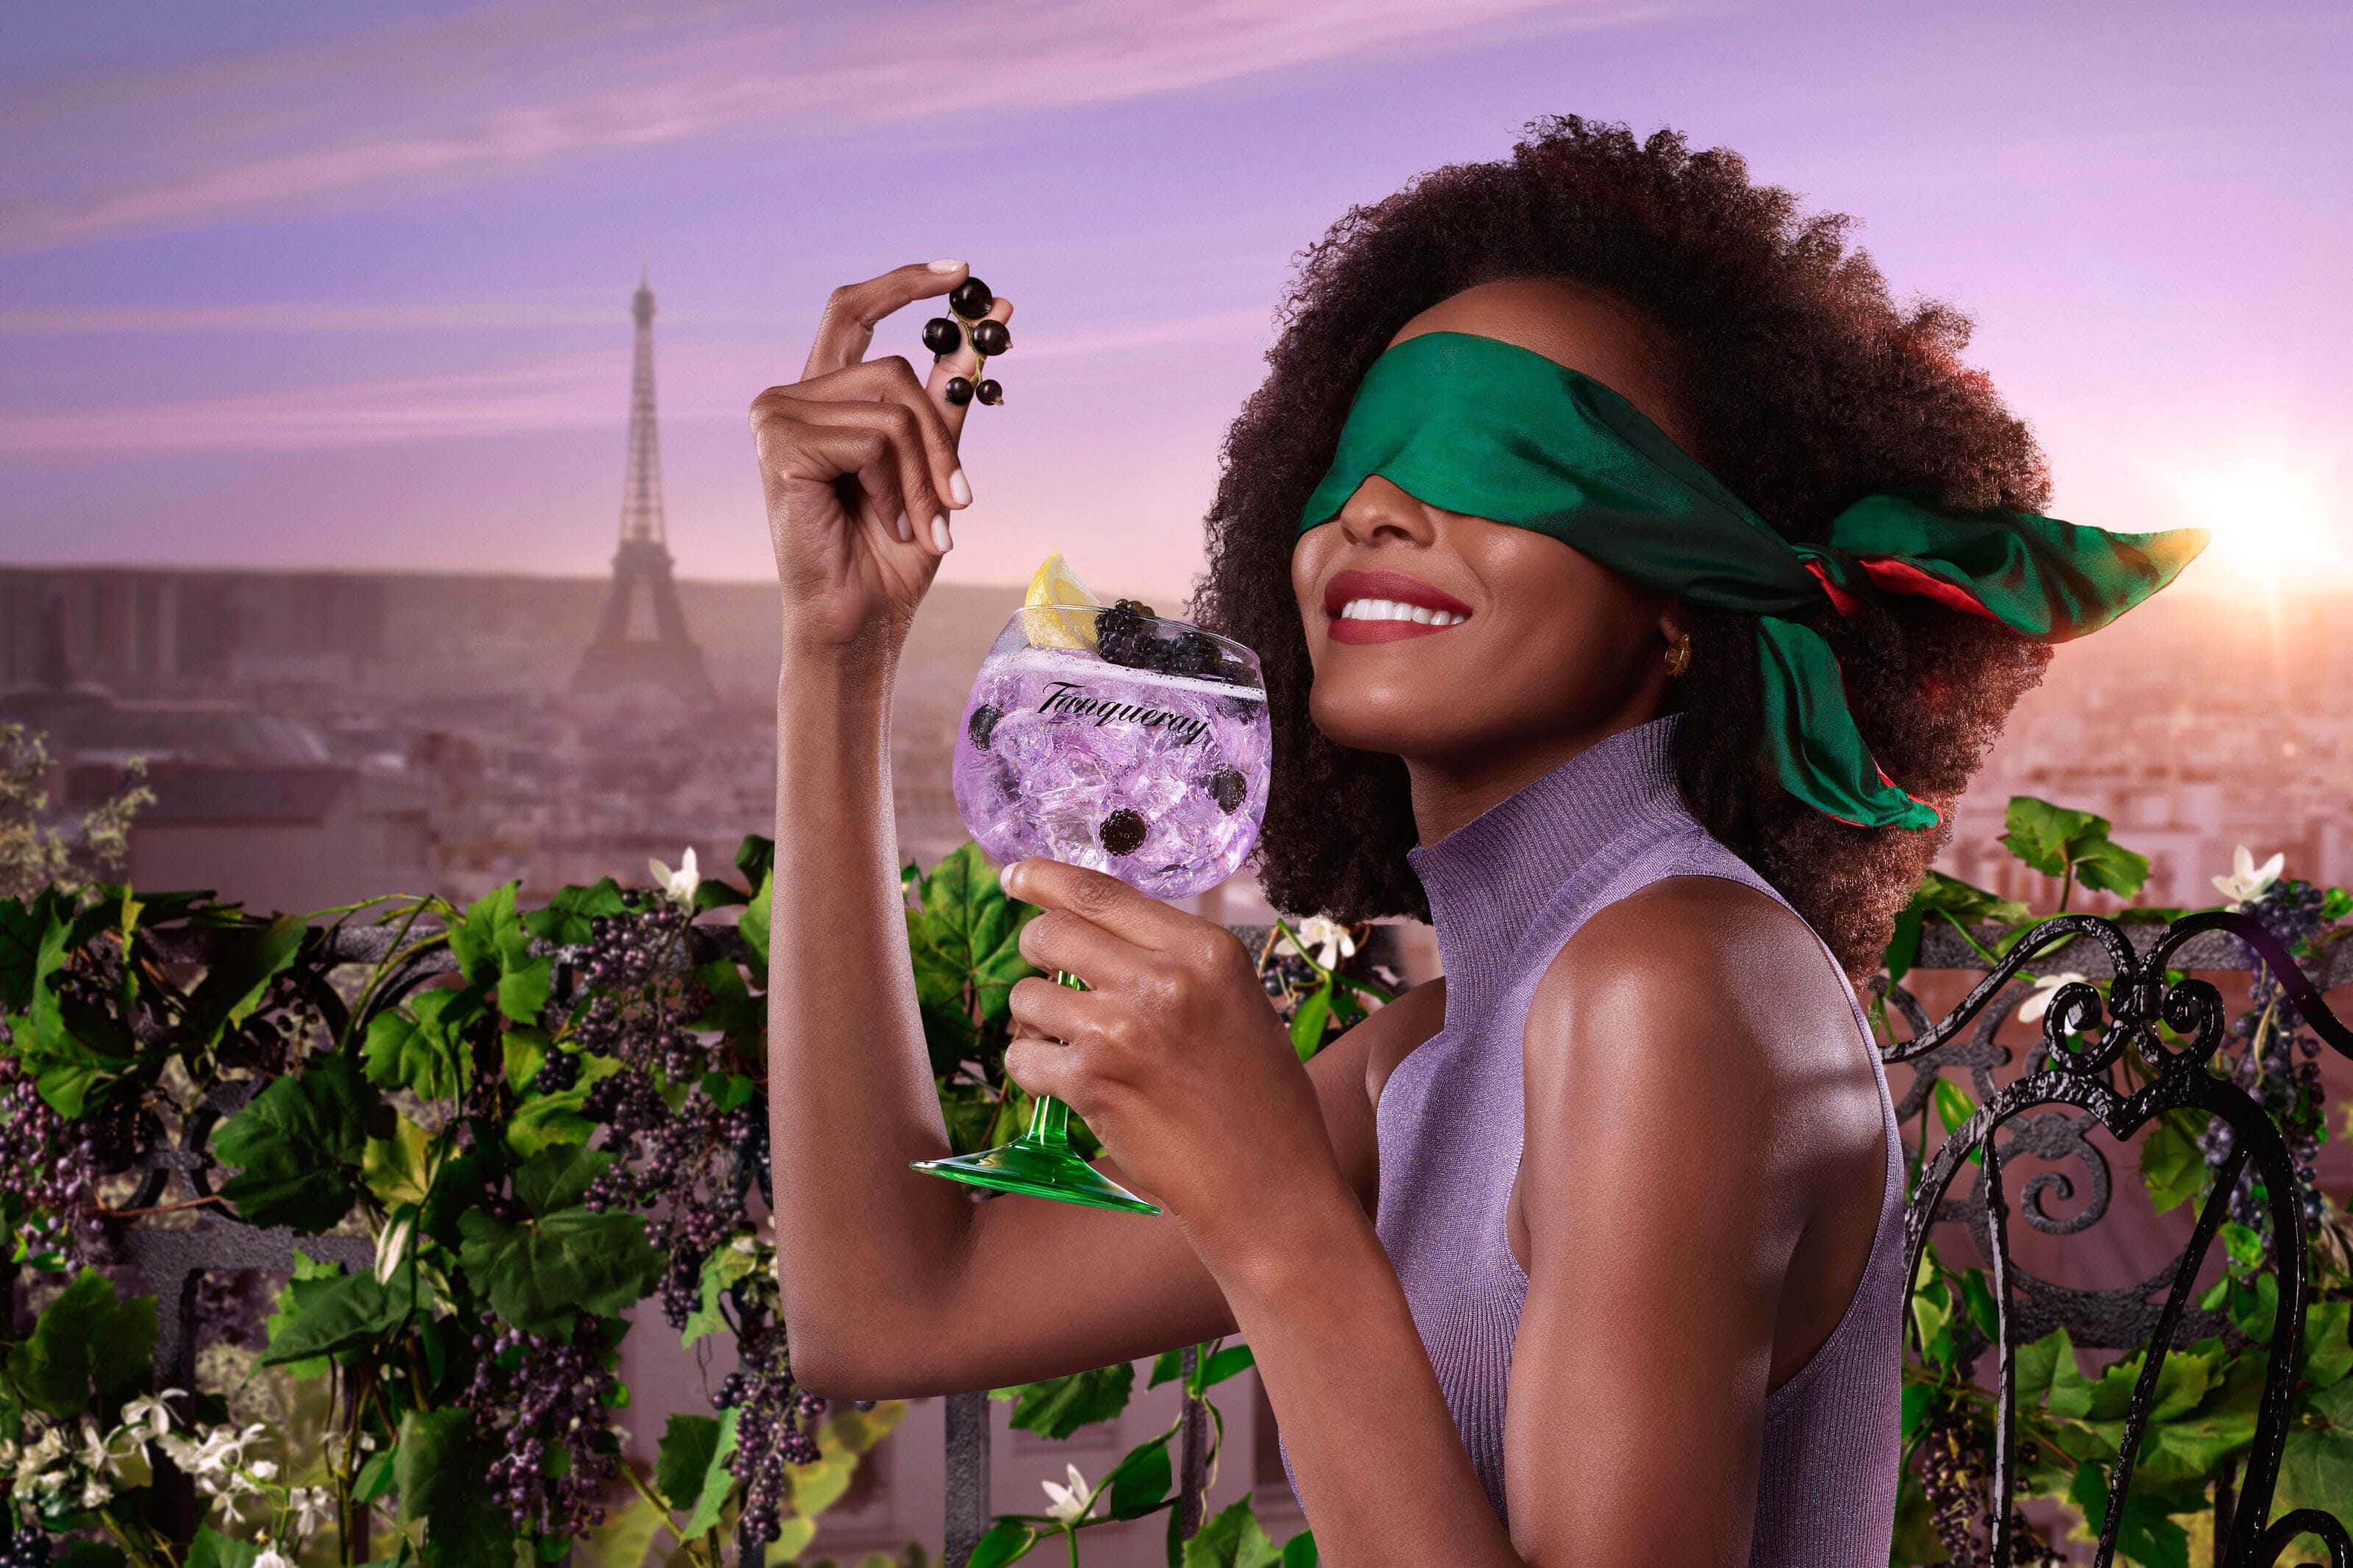 tanqueray blackcurrant gin image with a model wearing blindfold holding blackcurrants